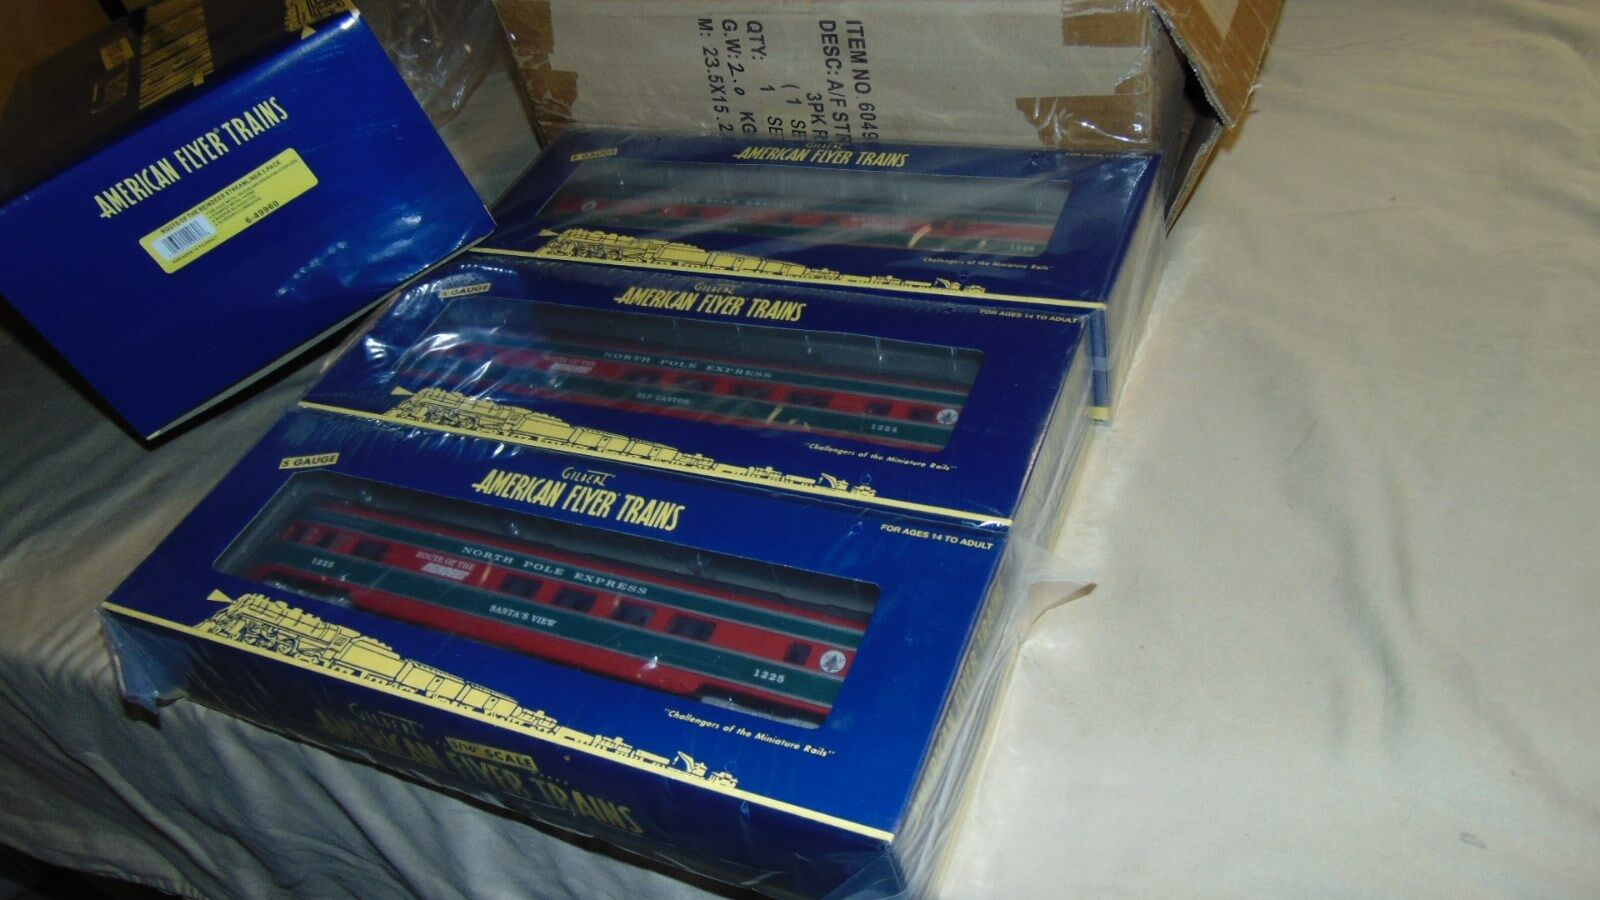 FLYER S GAUGE 49960 NORTH POLE EXPRESS 3 CAR PASSENGER NEW IN ORIGINAL BOX